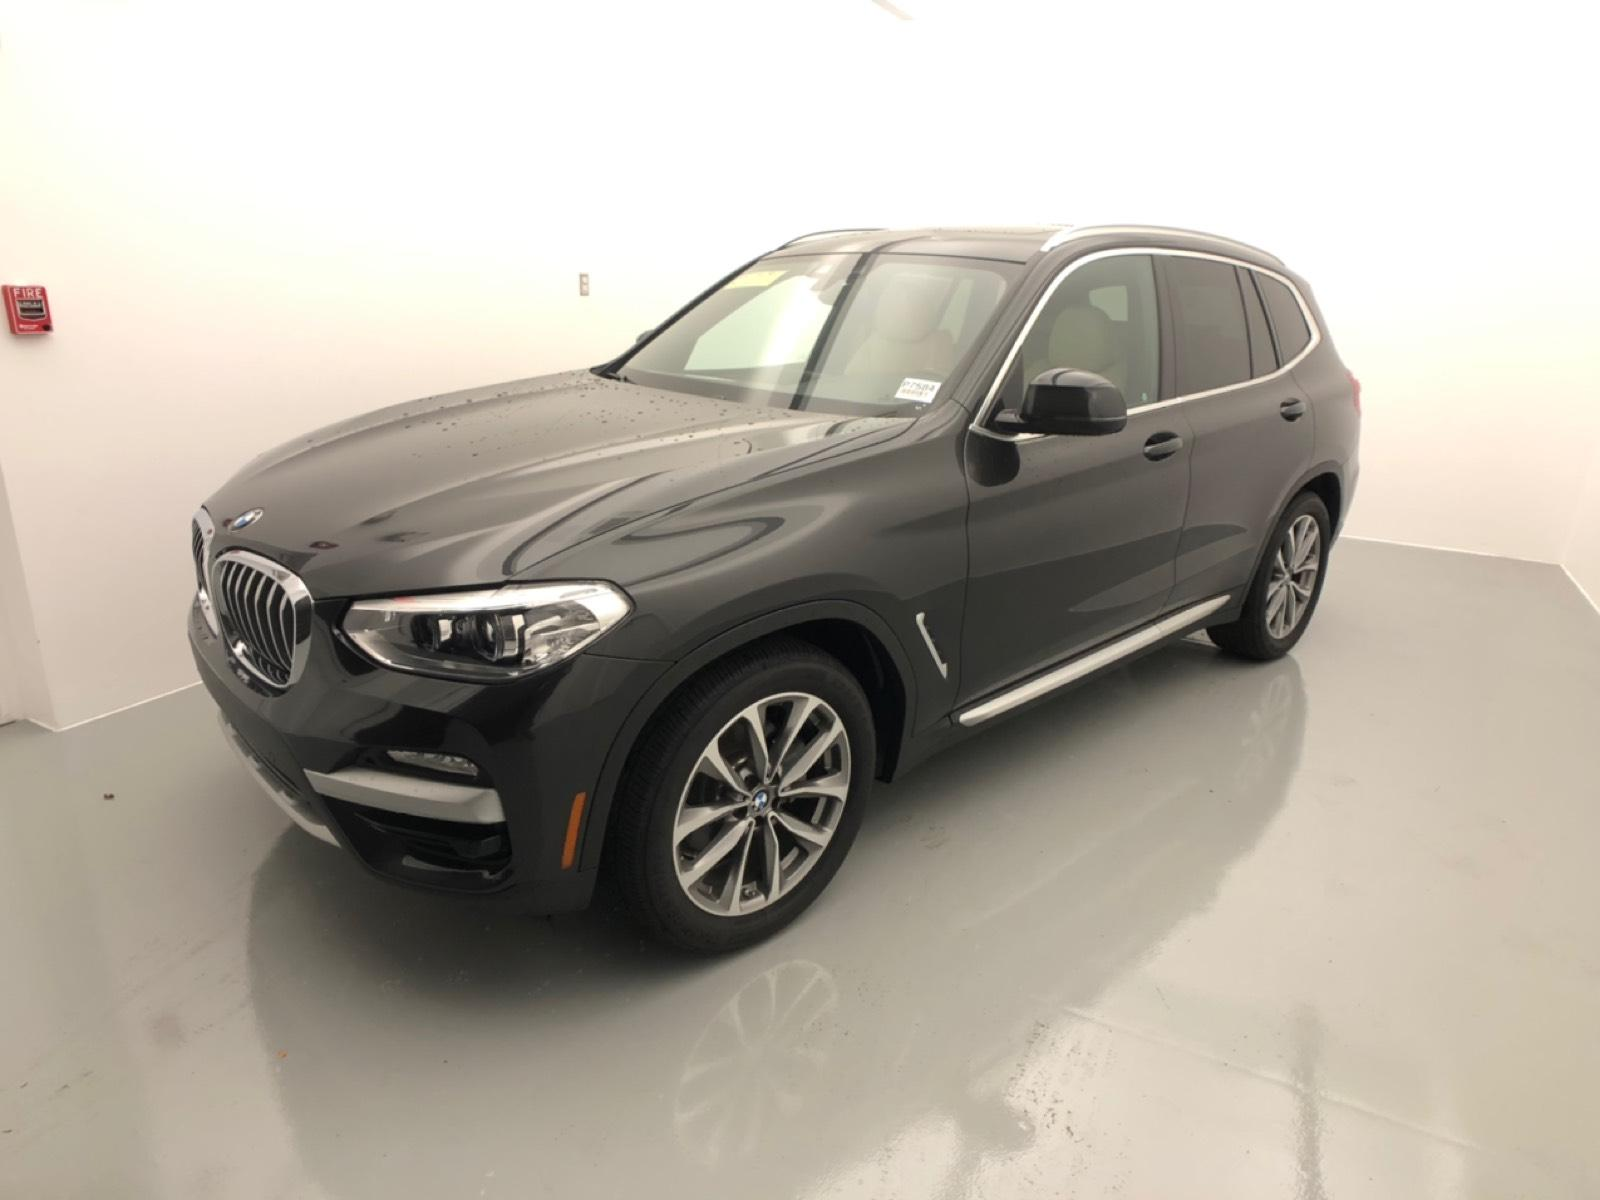 Certified Pre-Owned 2019 X3 sDrive30i